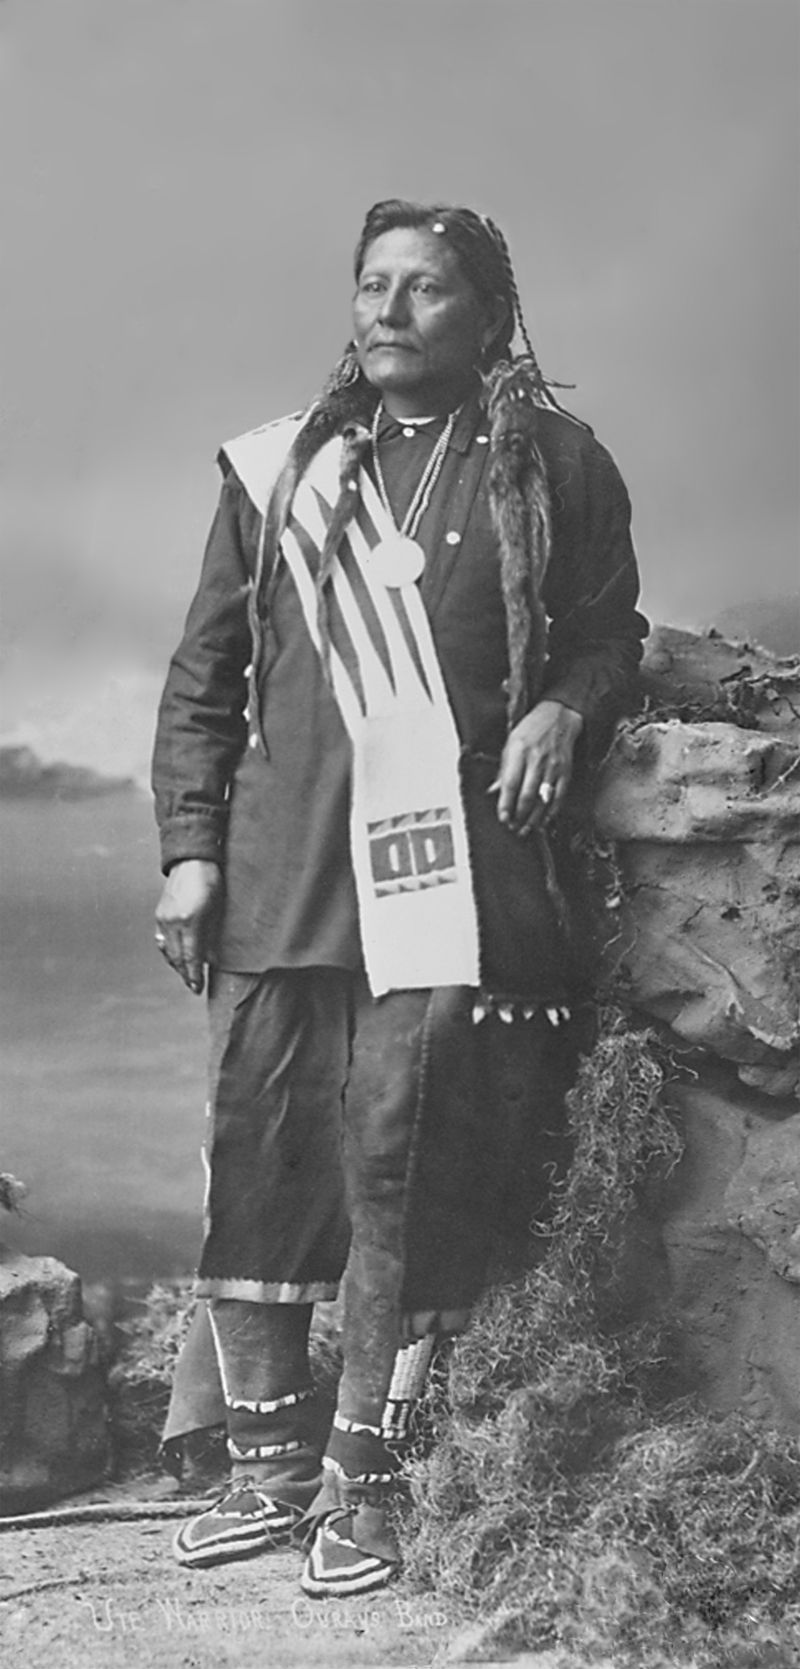 An old photograph of Tom, A Ute Warrior from Ouray's Band.